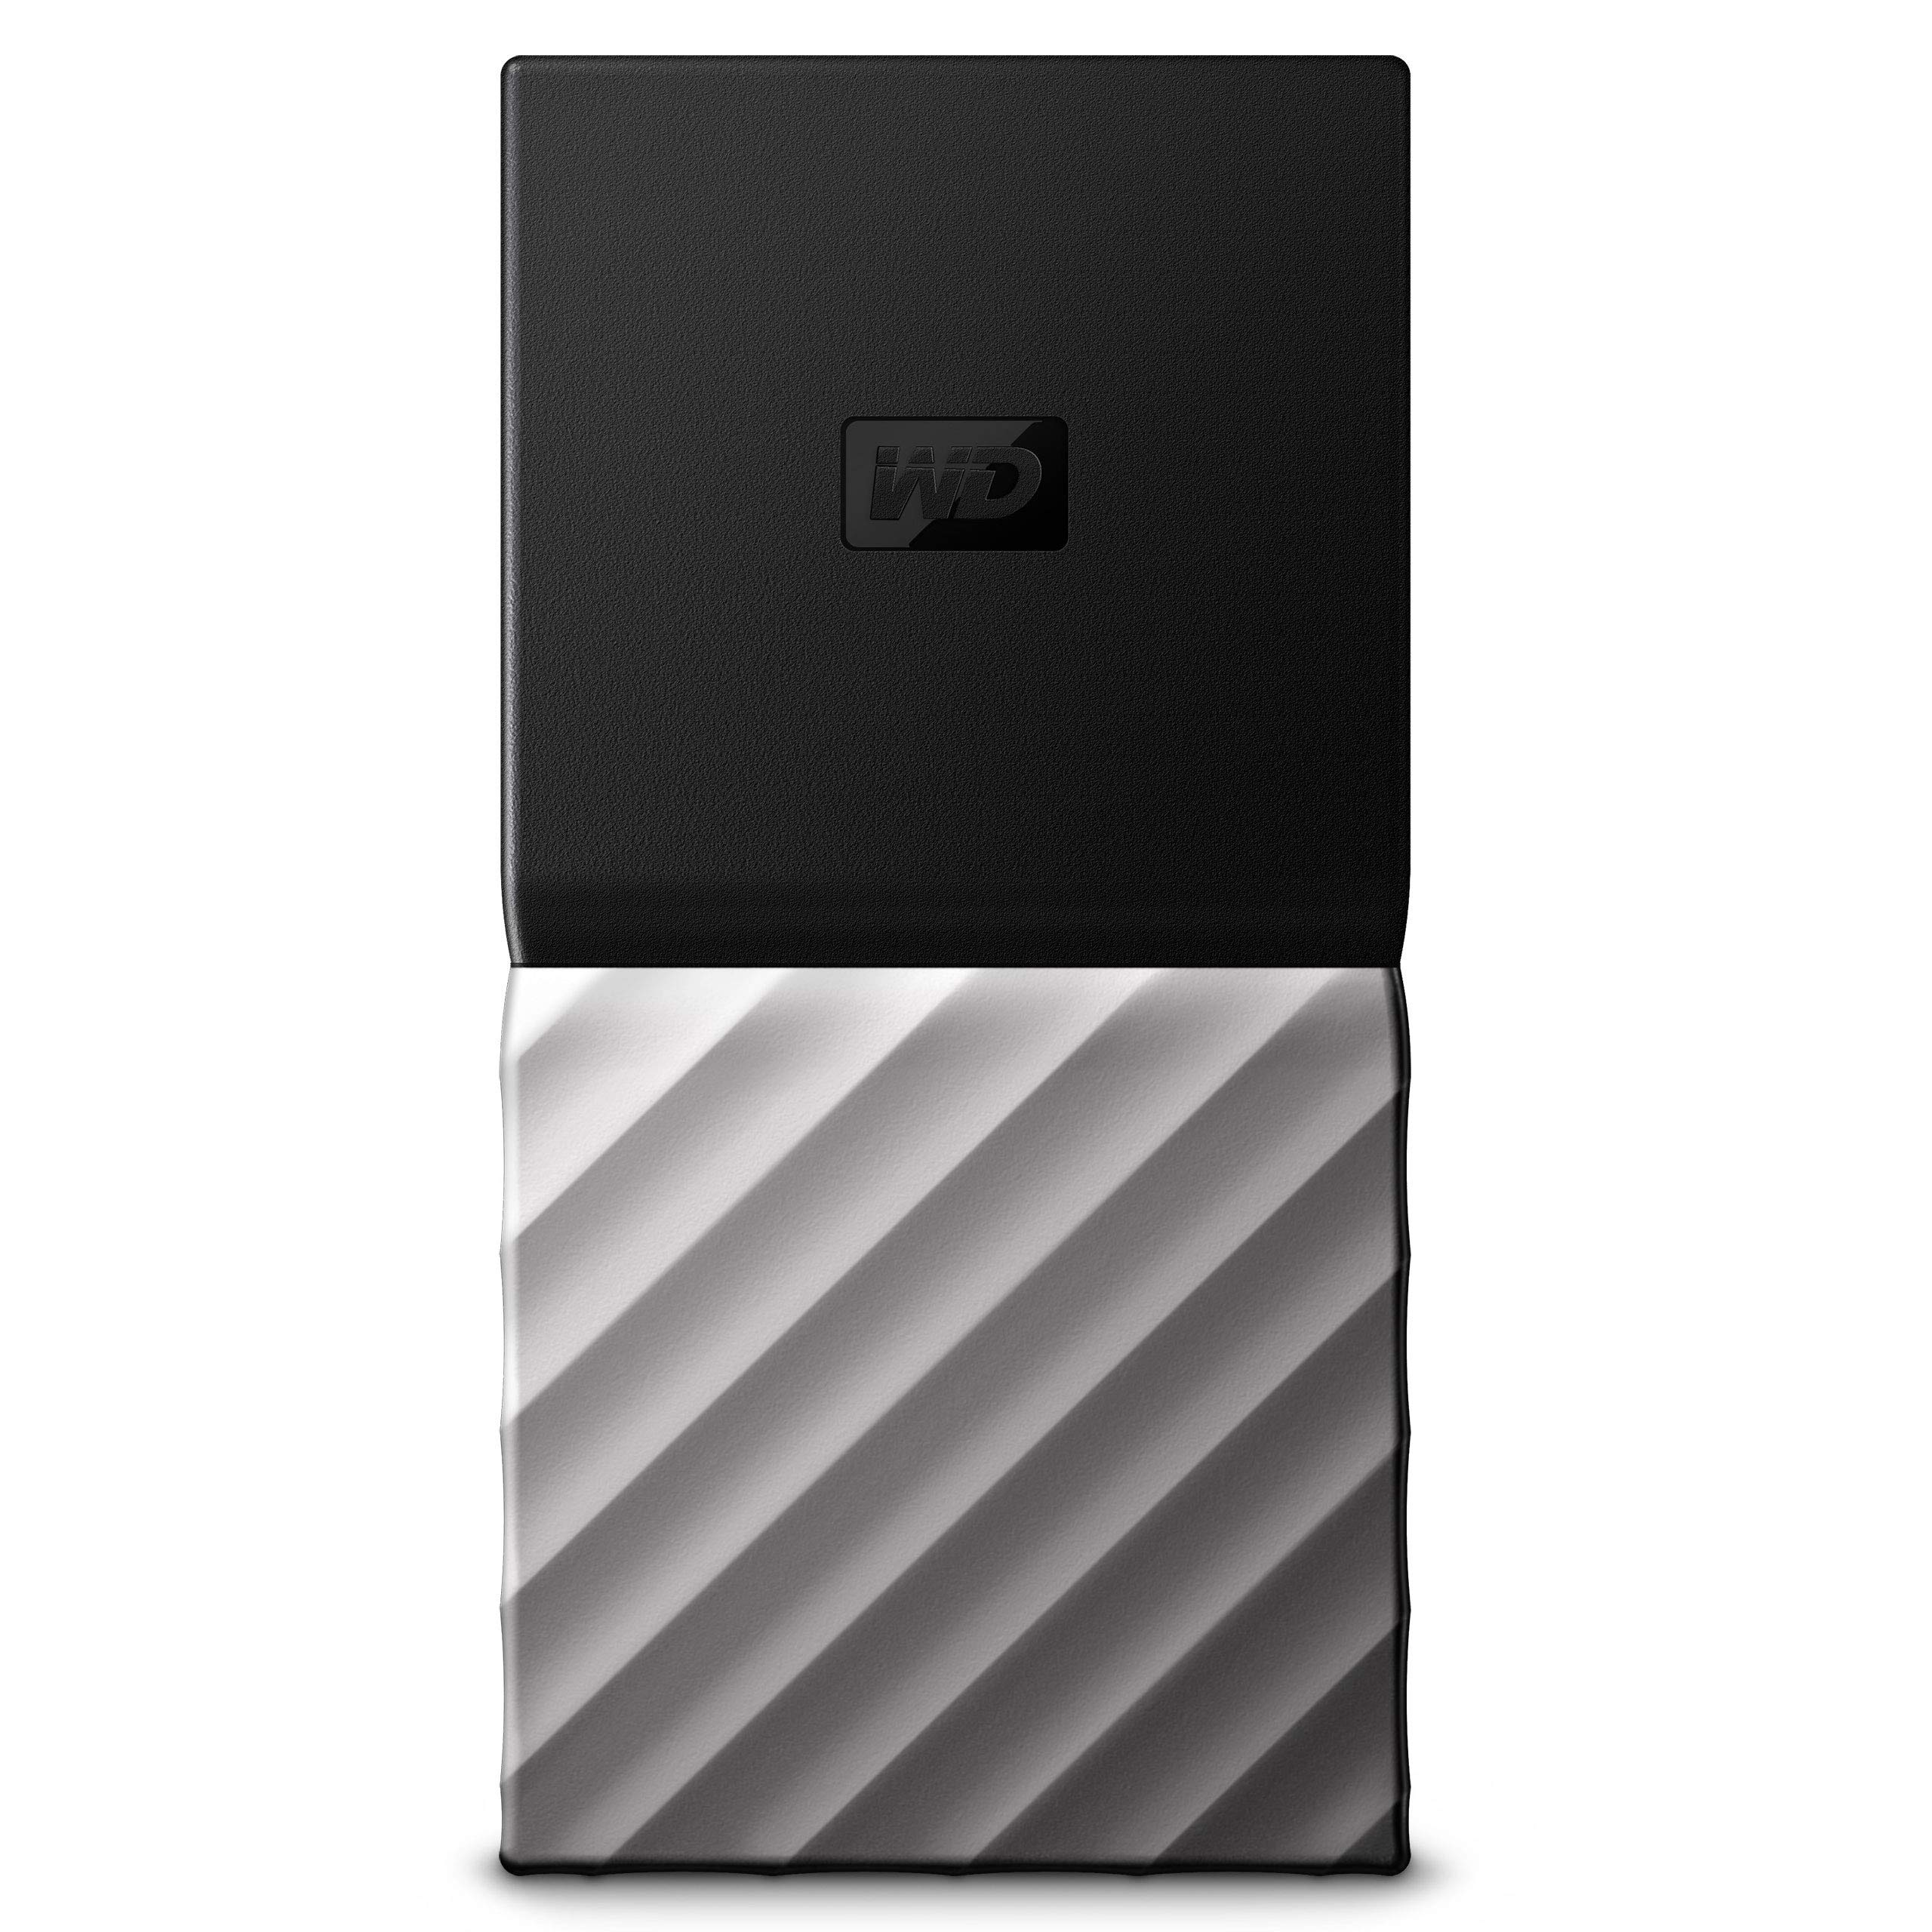 WD 1TB My Passport SSD Portable Storage - USB 3.1 - Black-Gray - WDBKVX0010PSL-WESN (Renewed)